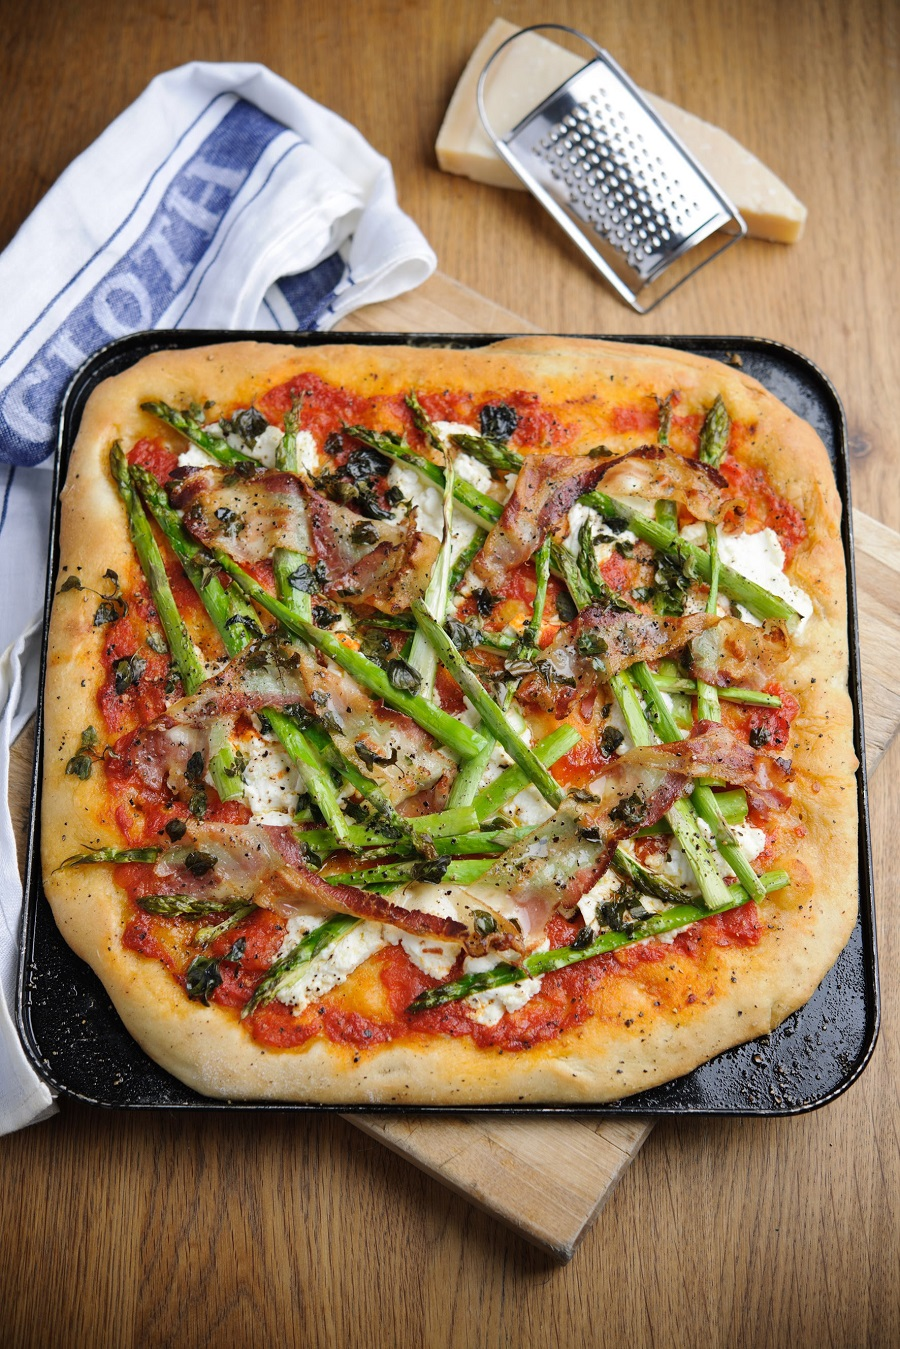 Asparagus, Ricotta And Pancetta Pizza.